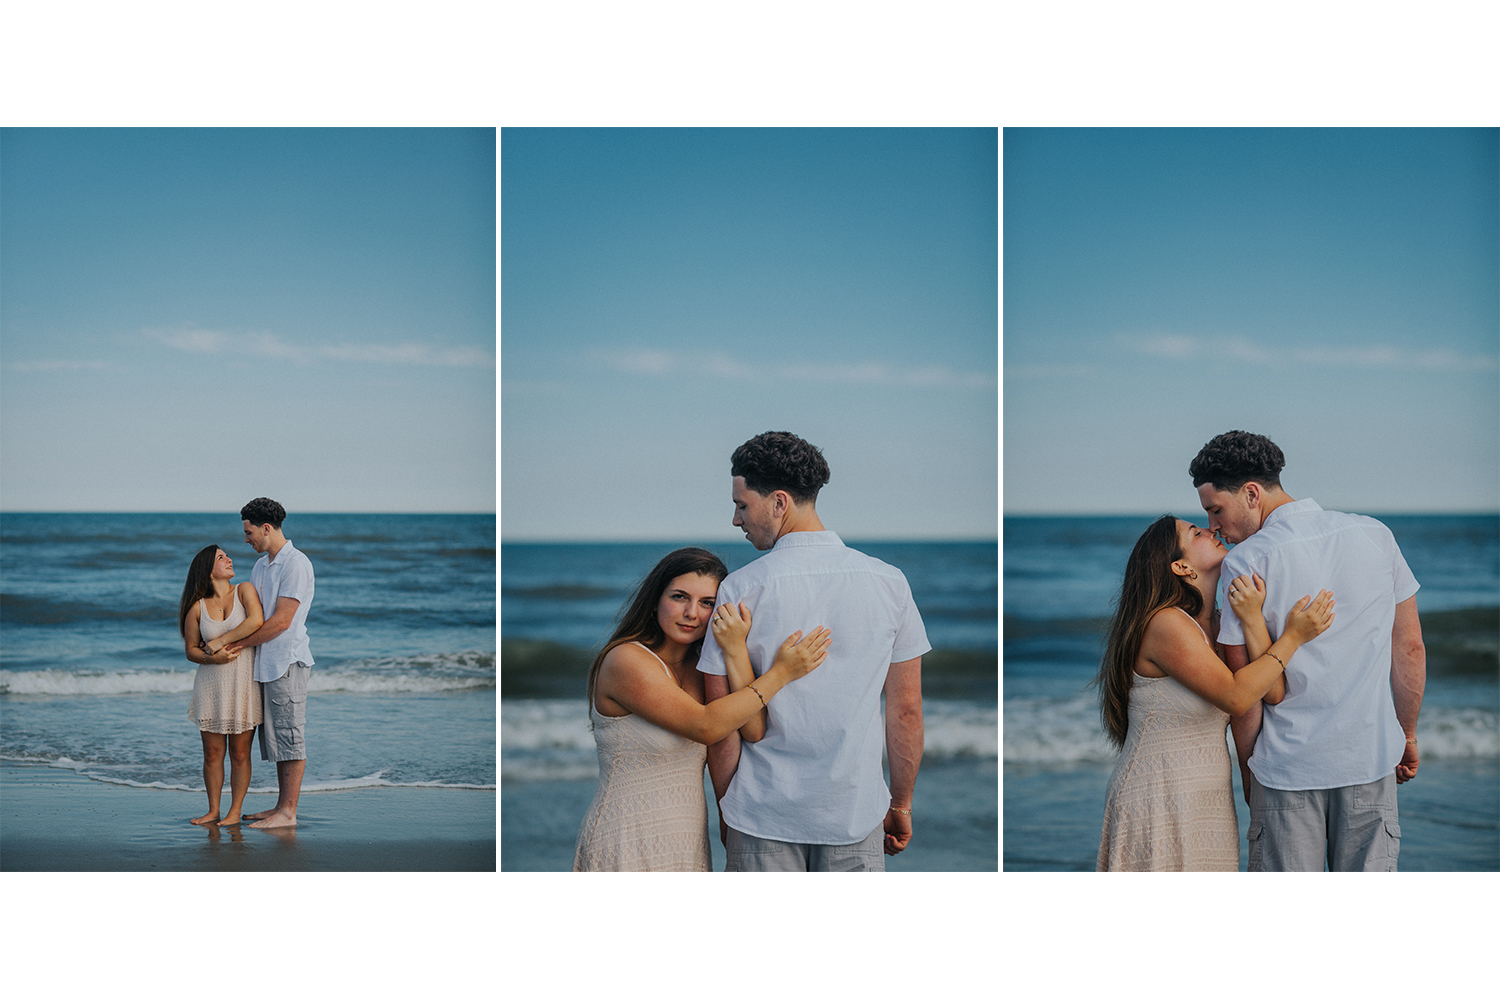 New_Jersey_Wedding_Photography_Engagement_Session_Beach_Session_Couple_020.jpg